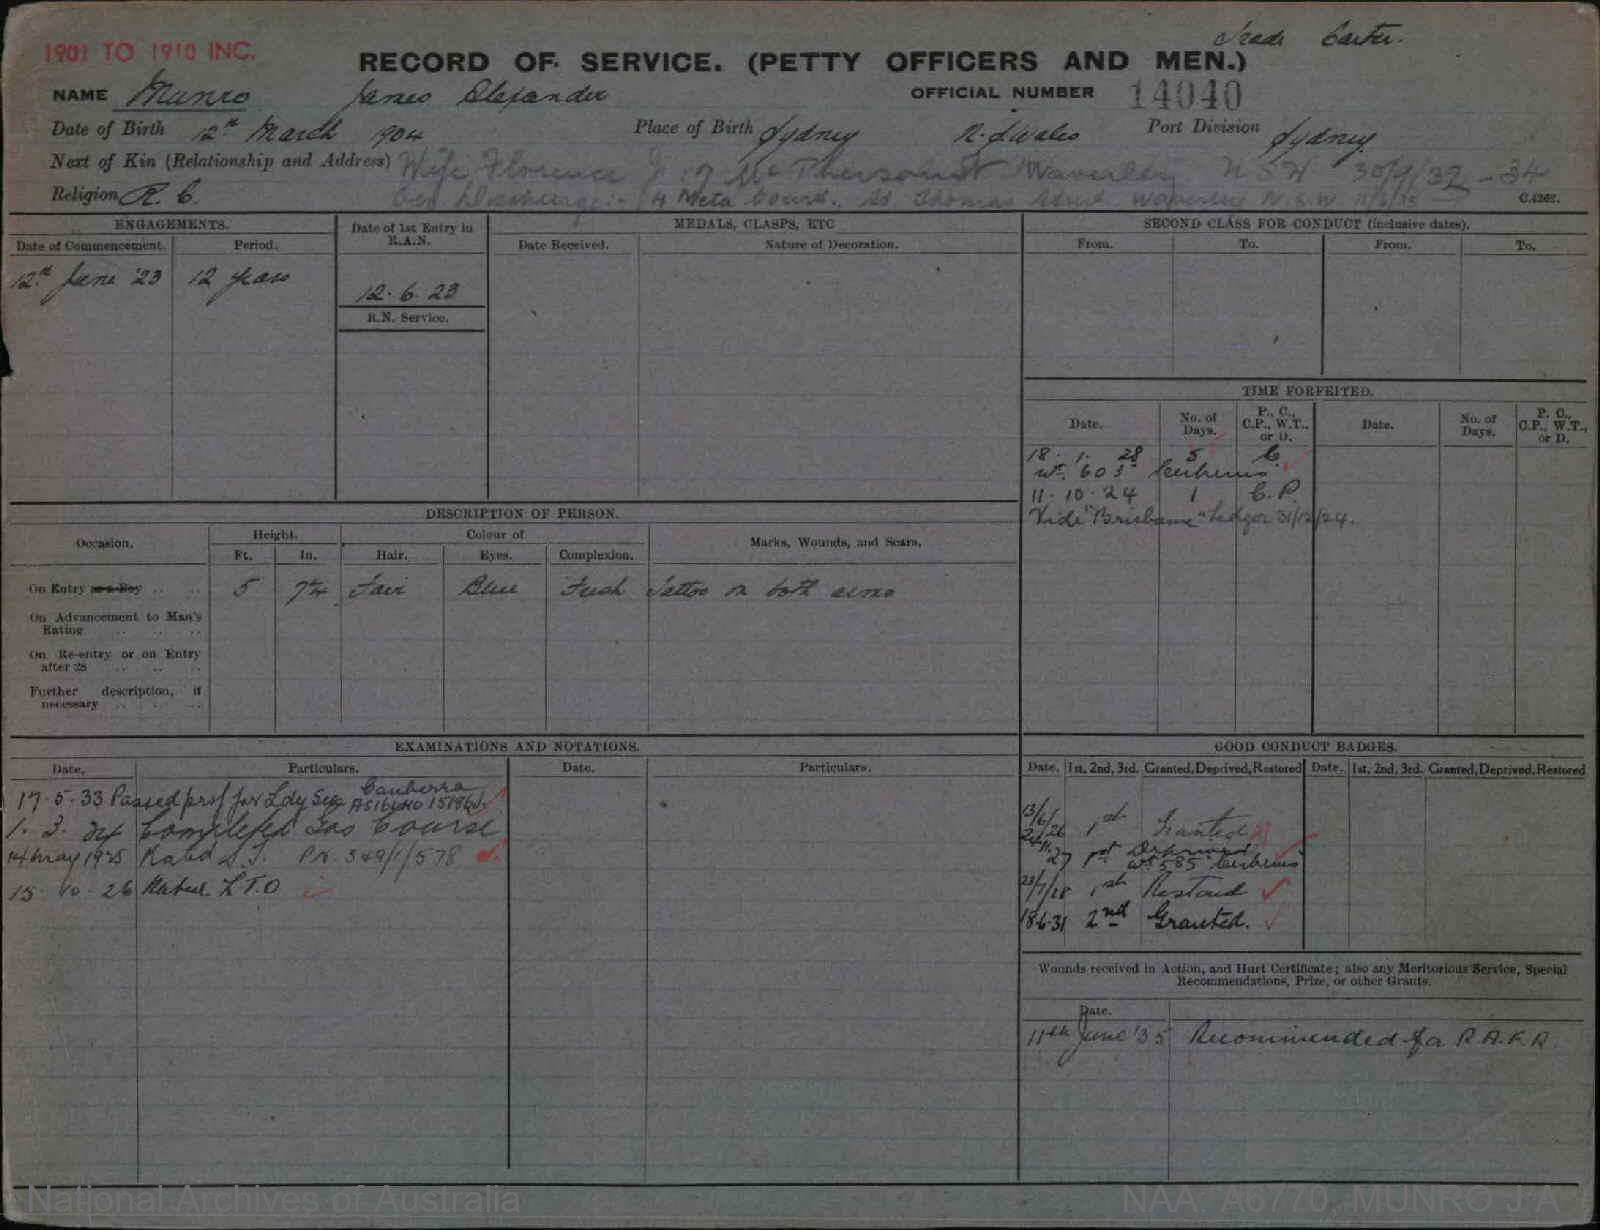 MUNRO JAMES ALEXANDER : Service Number - 14040 : Date of birth - 12 Mar 1904 : Place of birth - SYDNEY NSW : Place of enlistment - SYDNEY : Next of Kin - FLORENCE